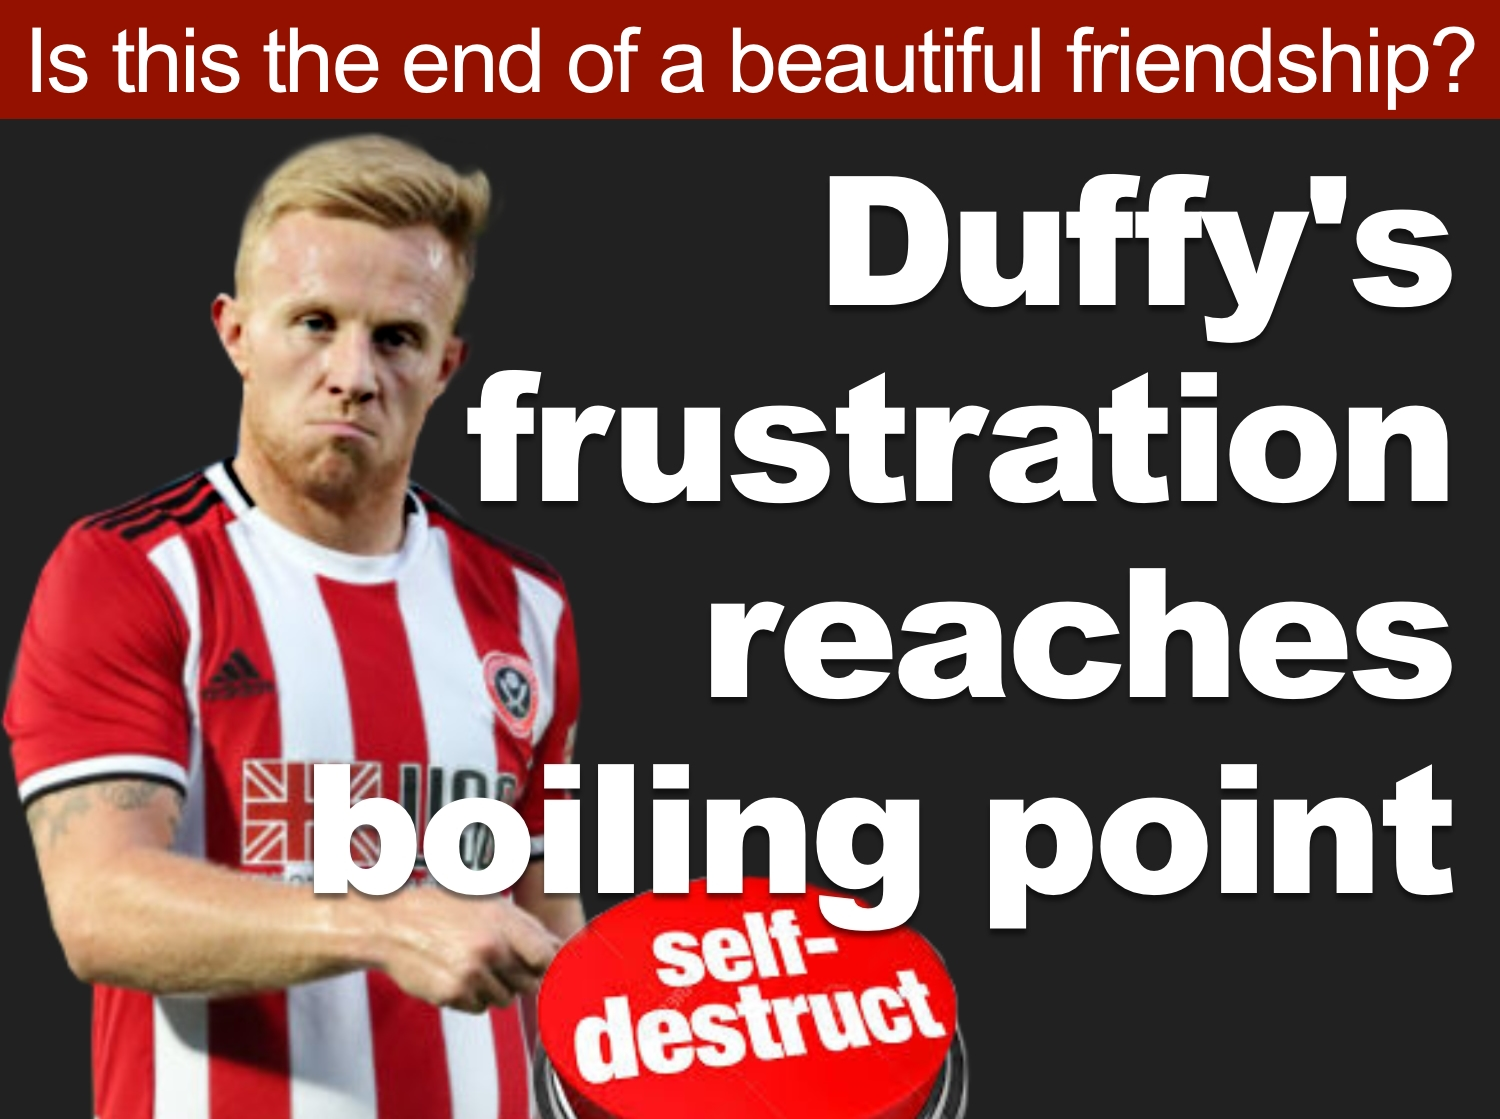 Sheffield United star Mark Duffy appears to have inexplicably pressed the self-destruct button as final countdown to Premier League begins